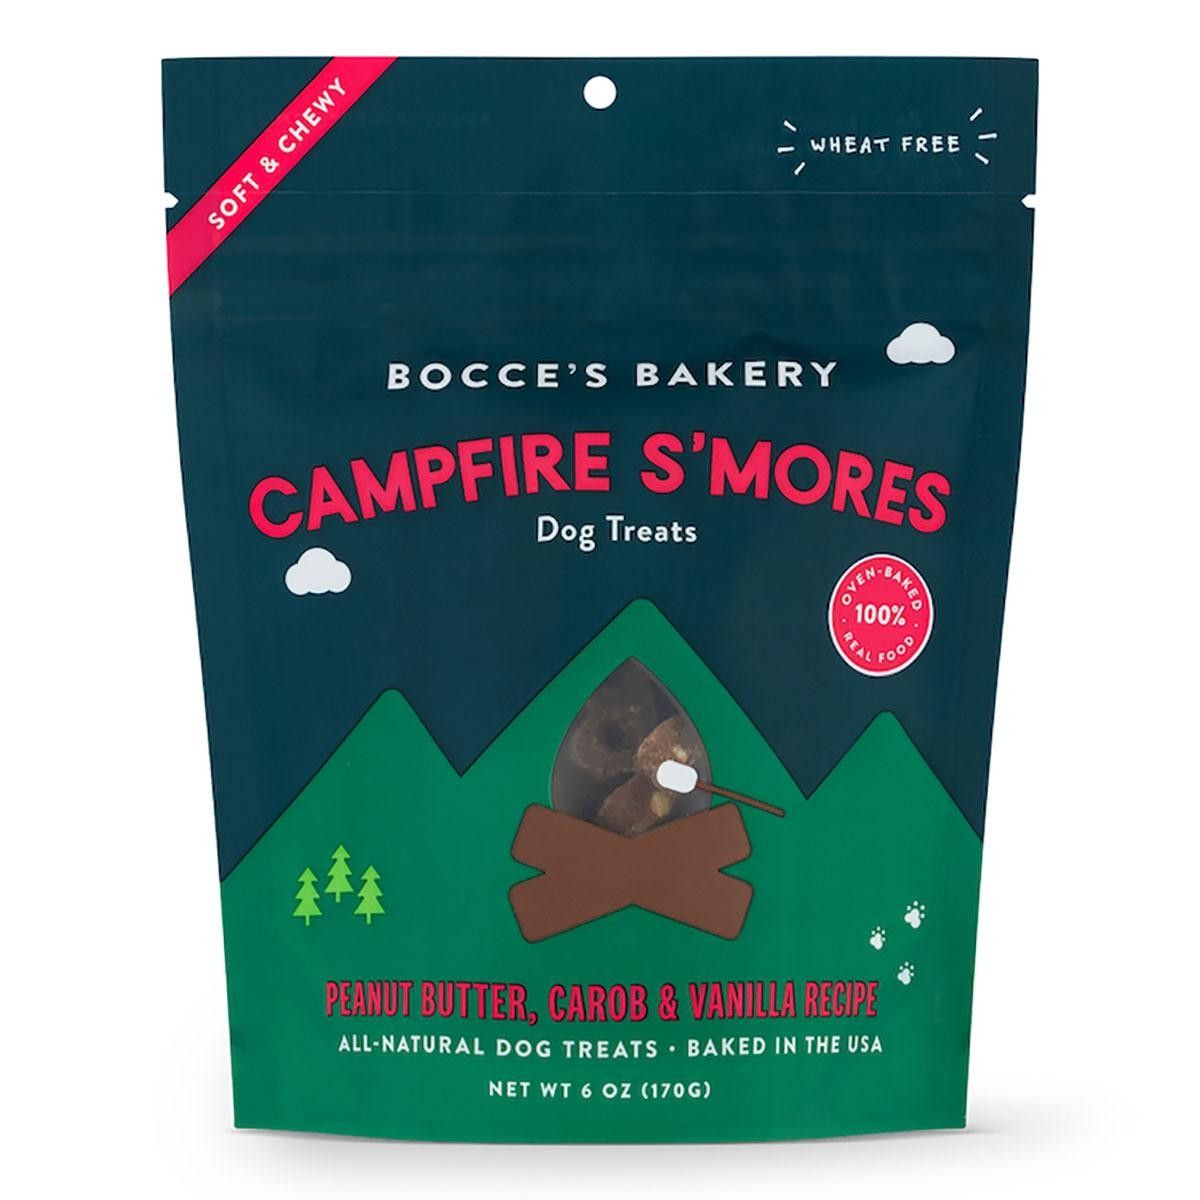 Bocce's Bakery Campfire S'mores Soft & Chewy Dog Treats, 6-oz